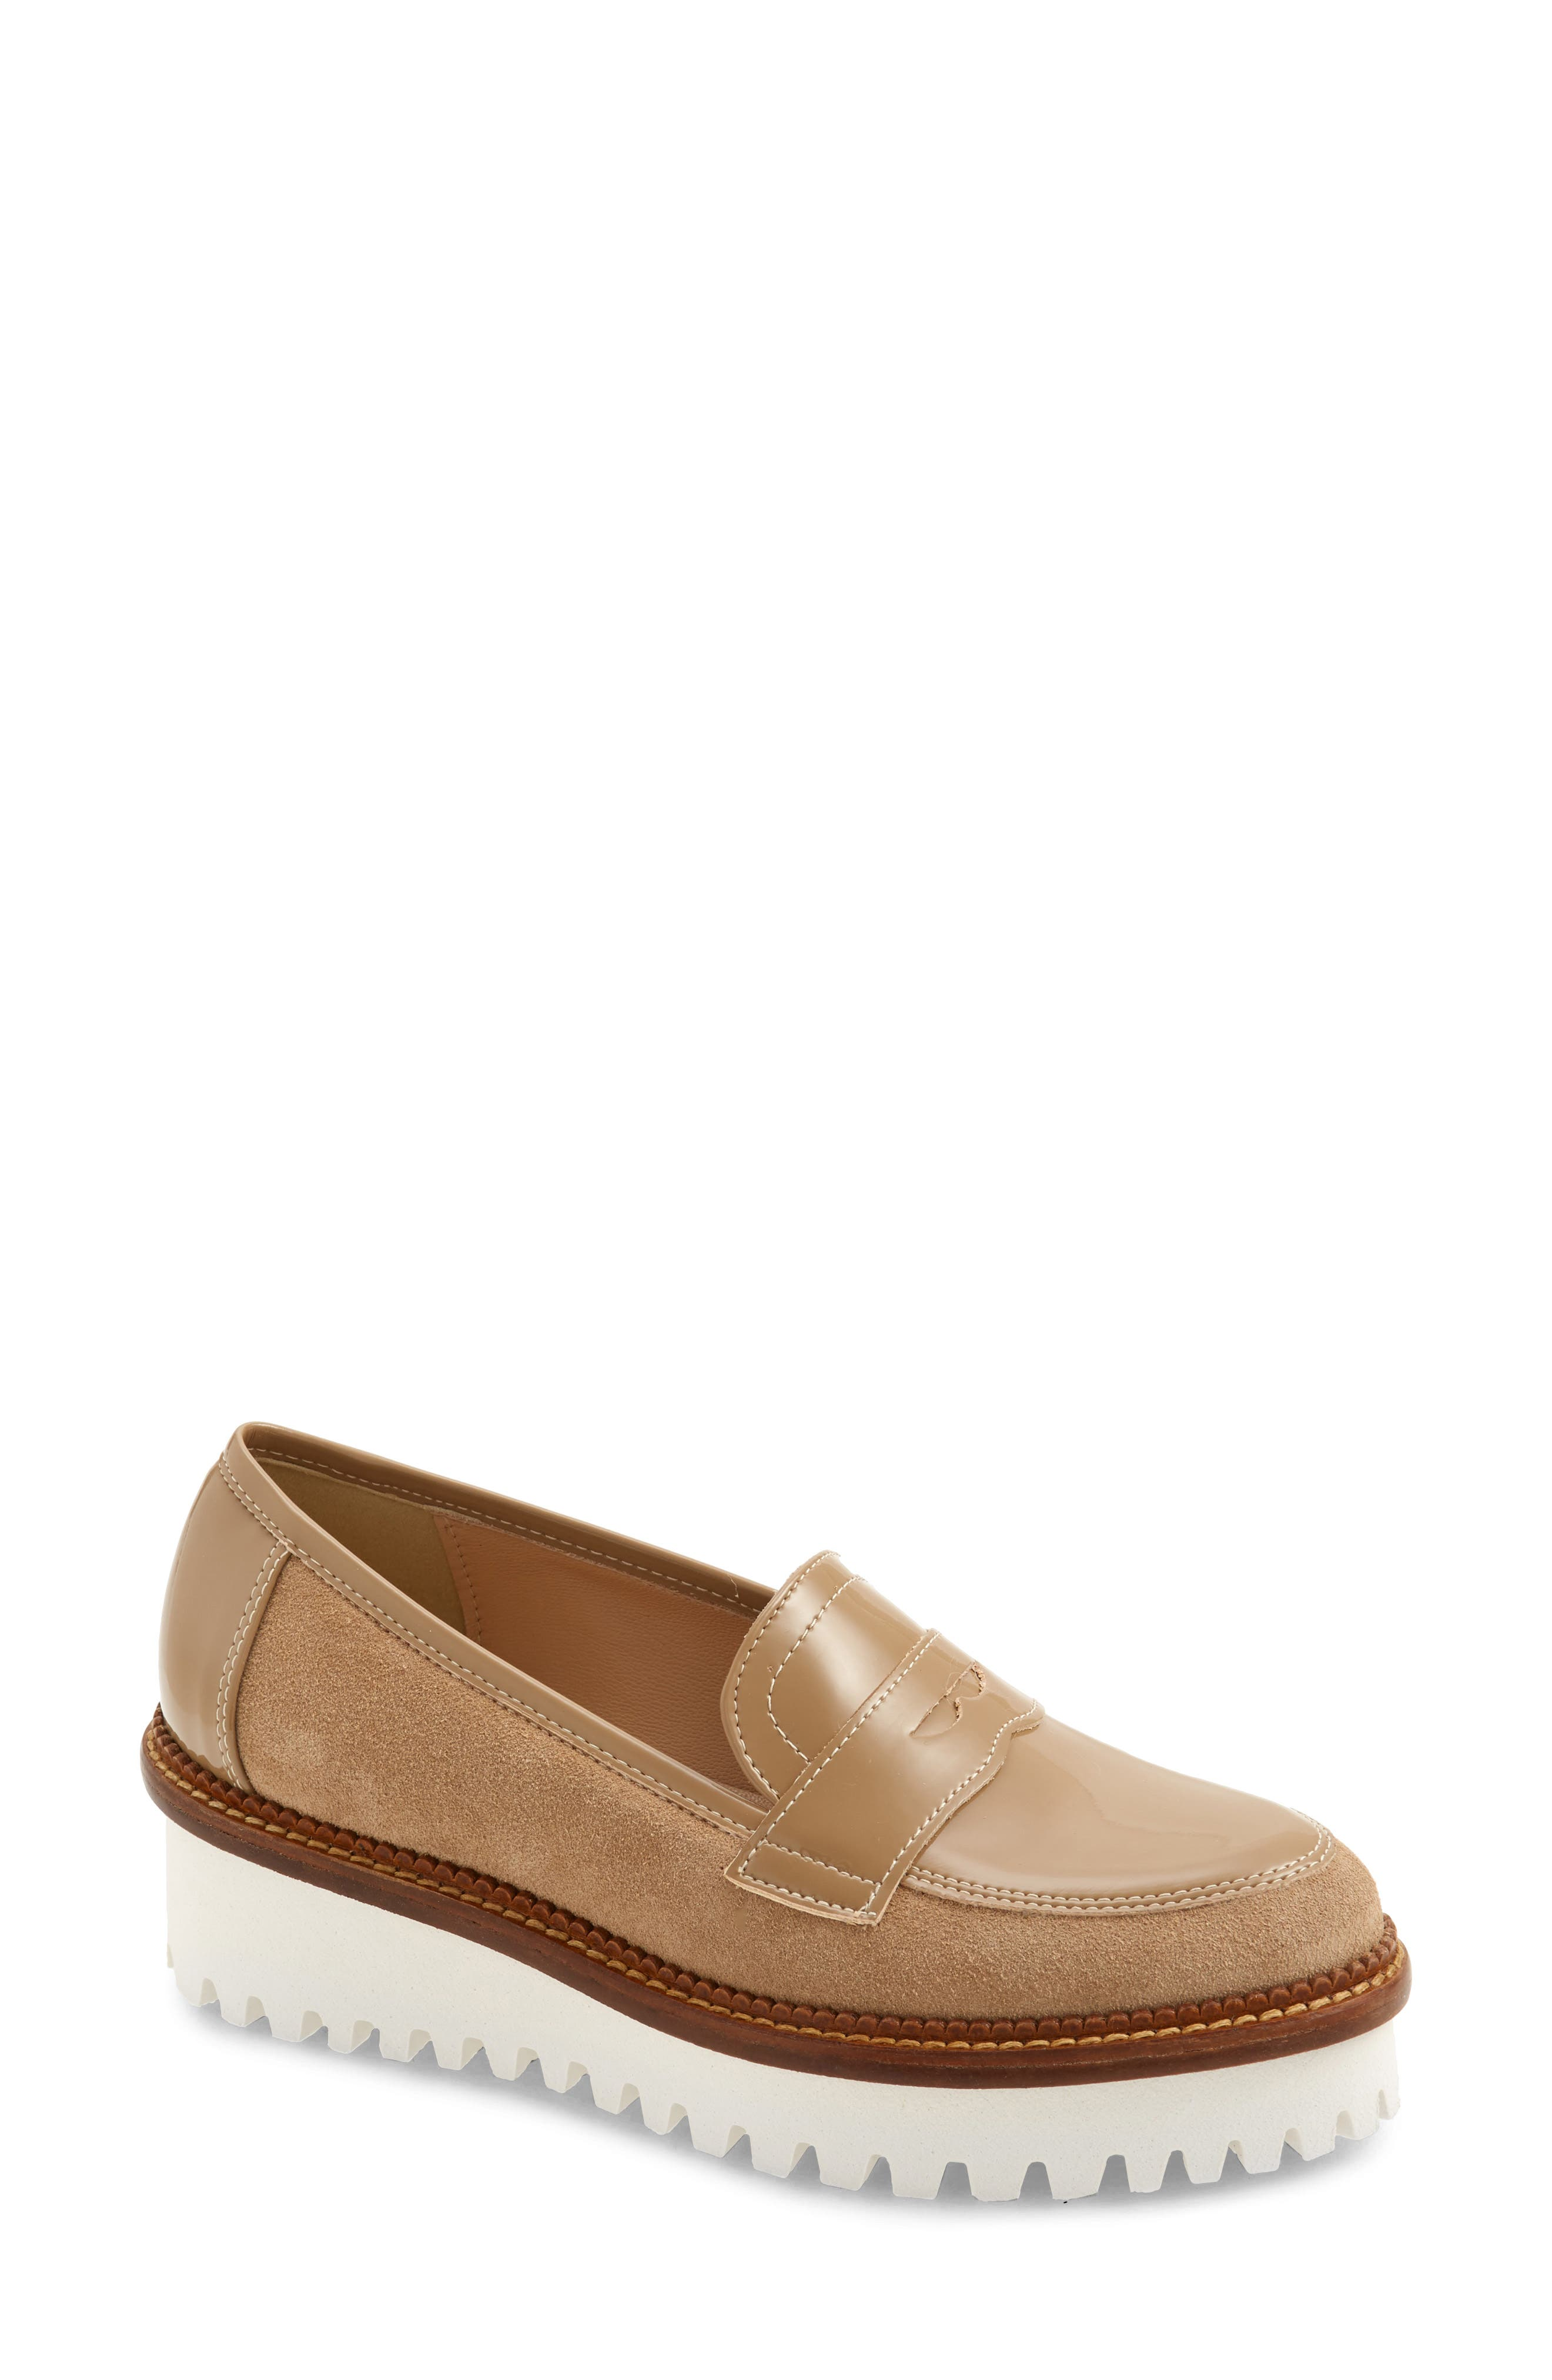 A lugged wedge brings just-right lift and ideal traction to a sophisticated menswear-inspired loafer. Style Name: Cordani Audrey Platform Loafer (Women). Style Number: 6052820 1. Available in stores.